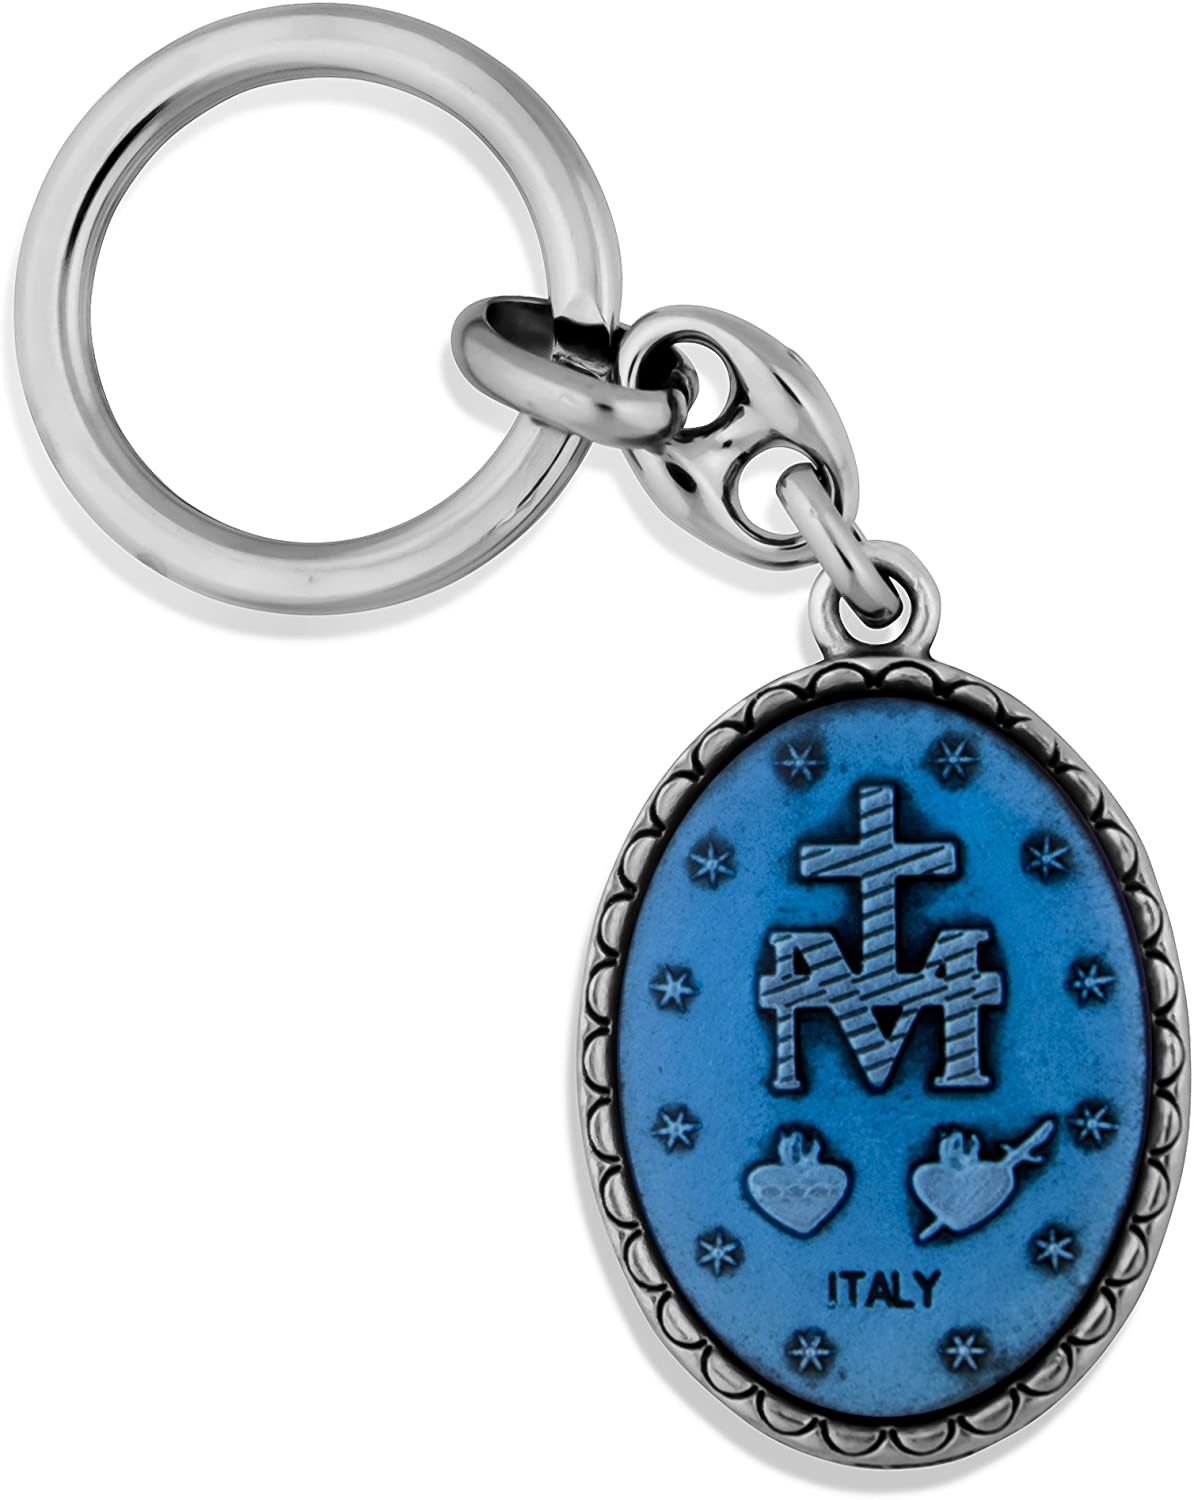 Saint Christopher Saint Key Chain with 1 3//4 Fob by Venerare